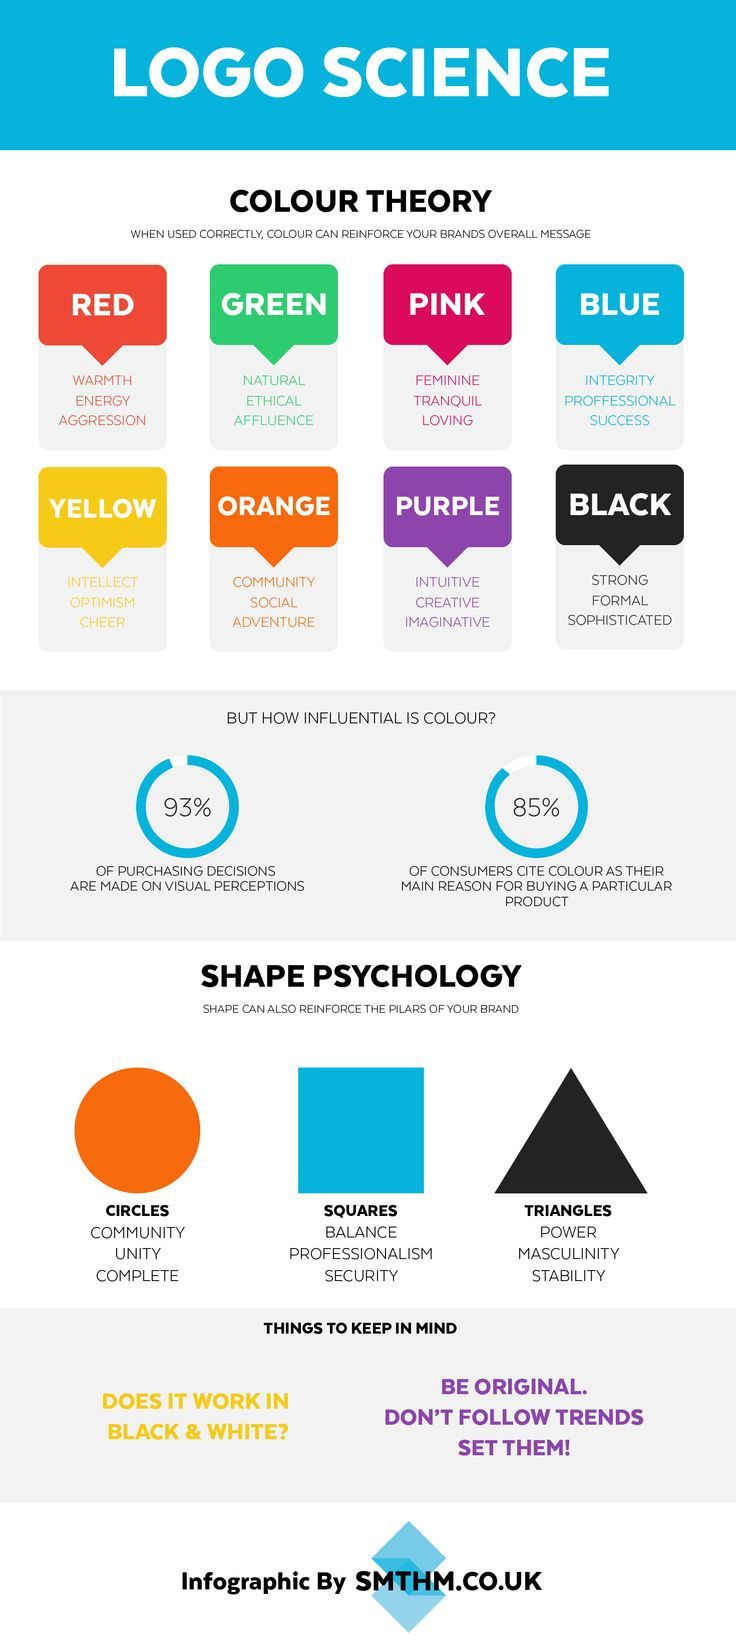 An infographic explaining the basics of colour theory and shape psychology in relation to logo design & branding.